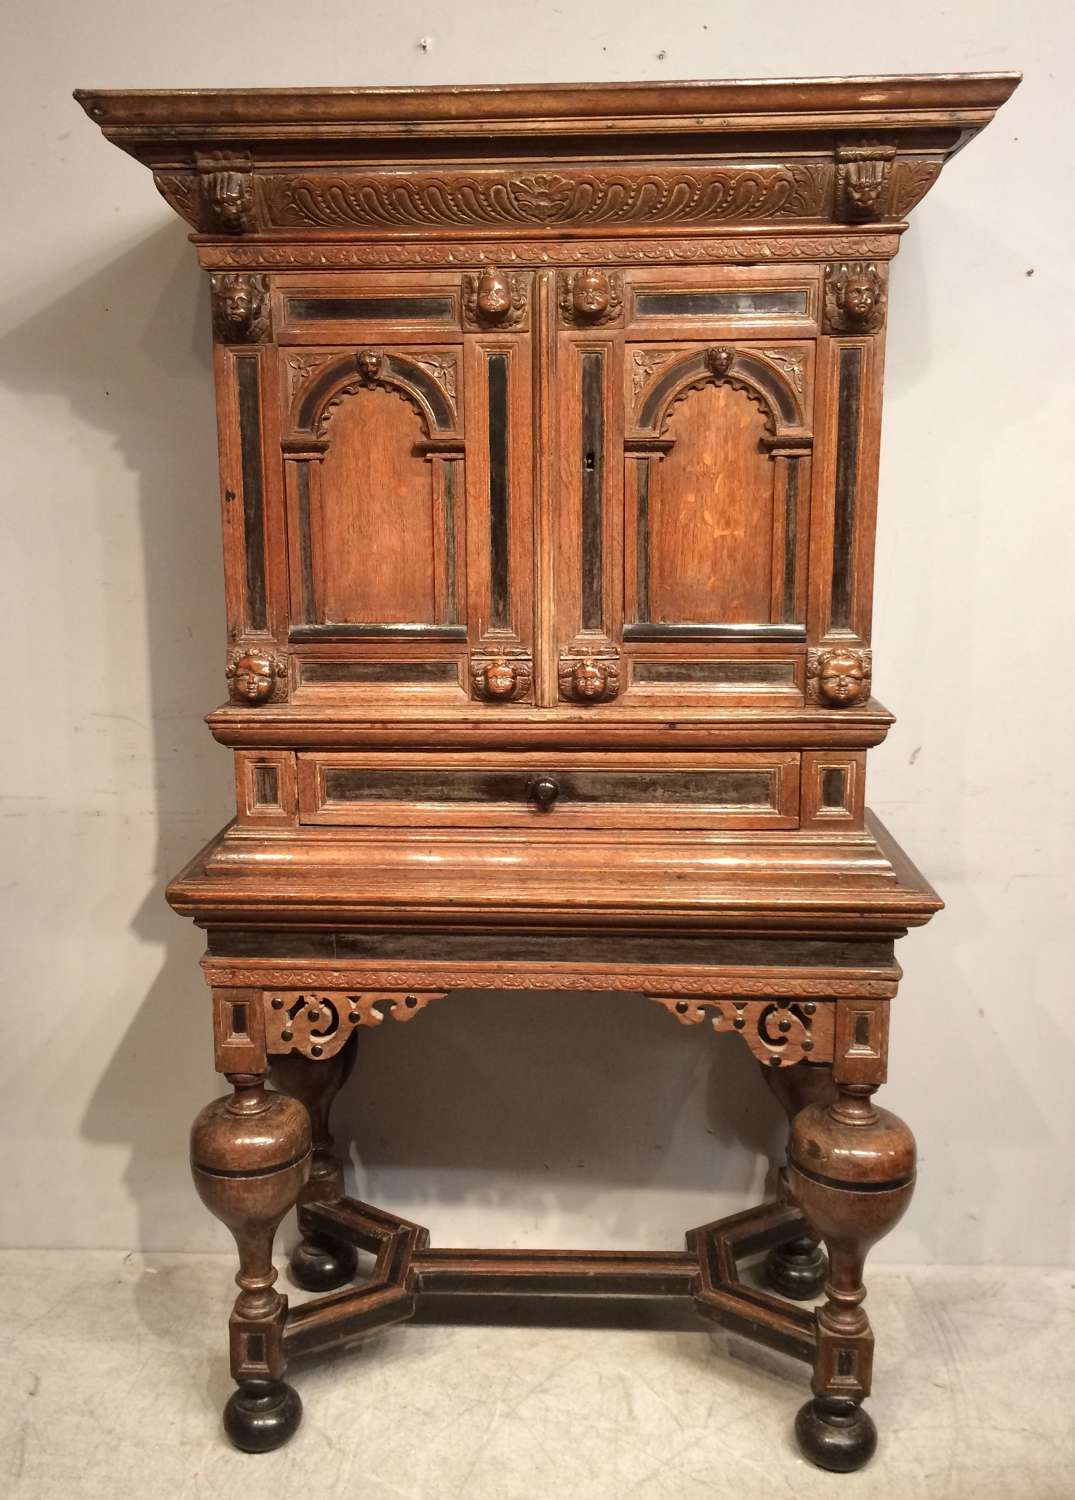 17th century antique Flemish oak cabinet on stand.